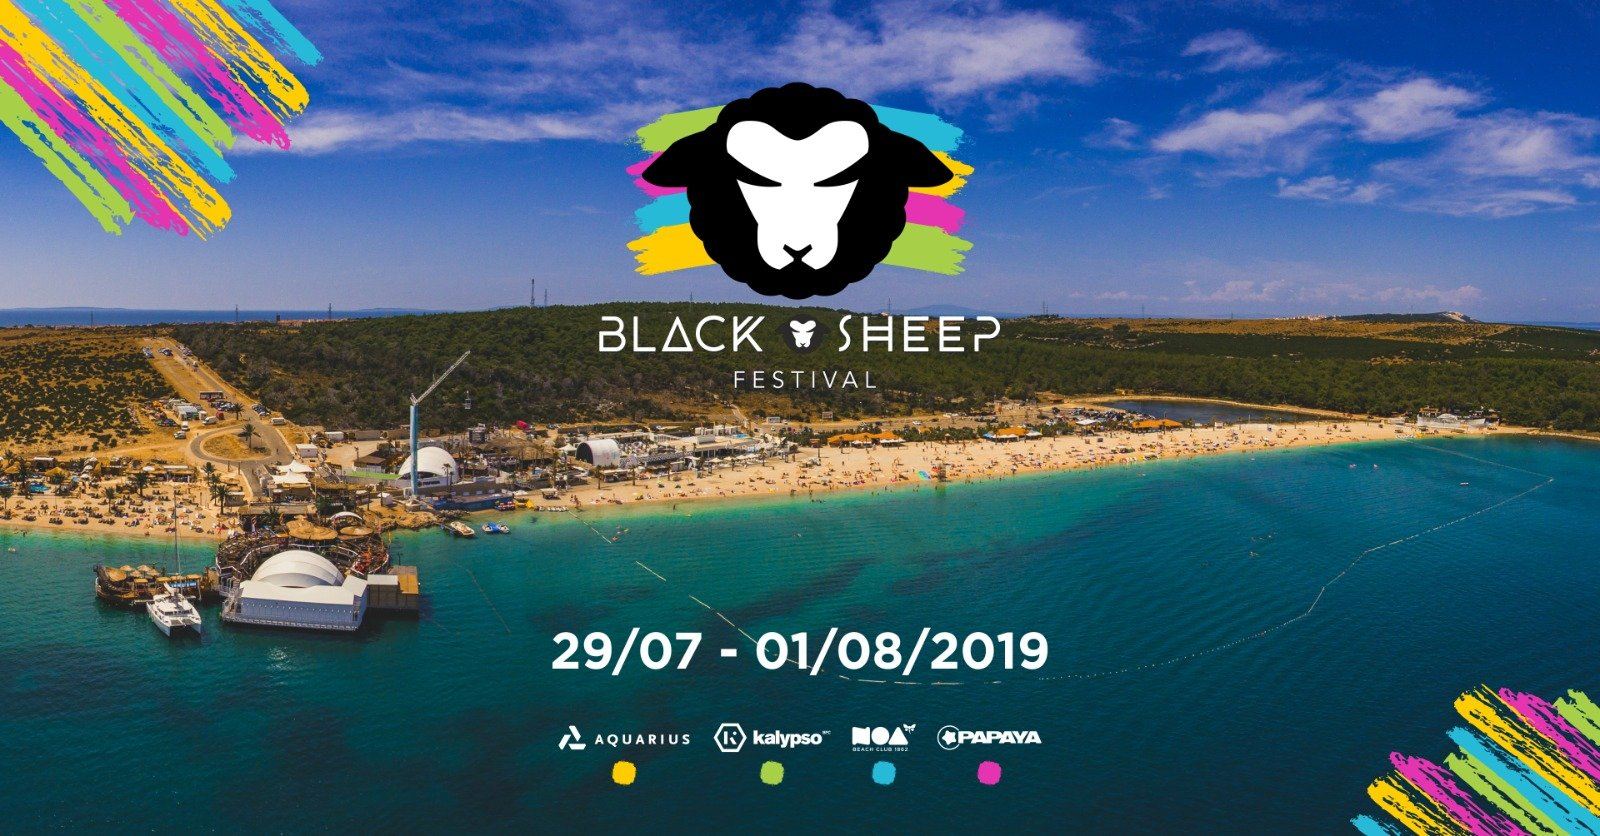 Black sheep festival 2019 zrce Papaya aquarius noa kalypso